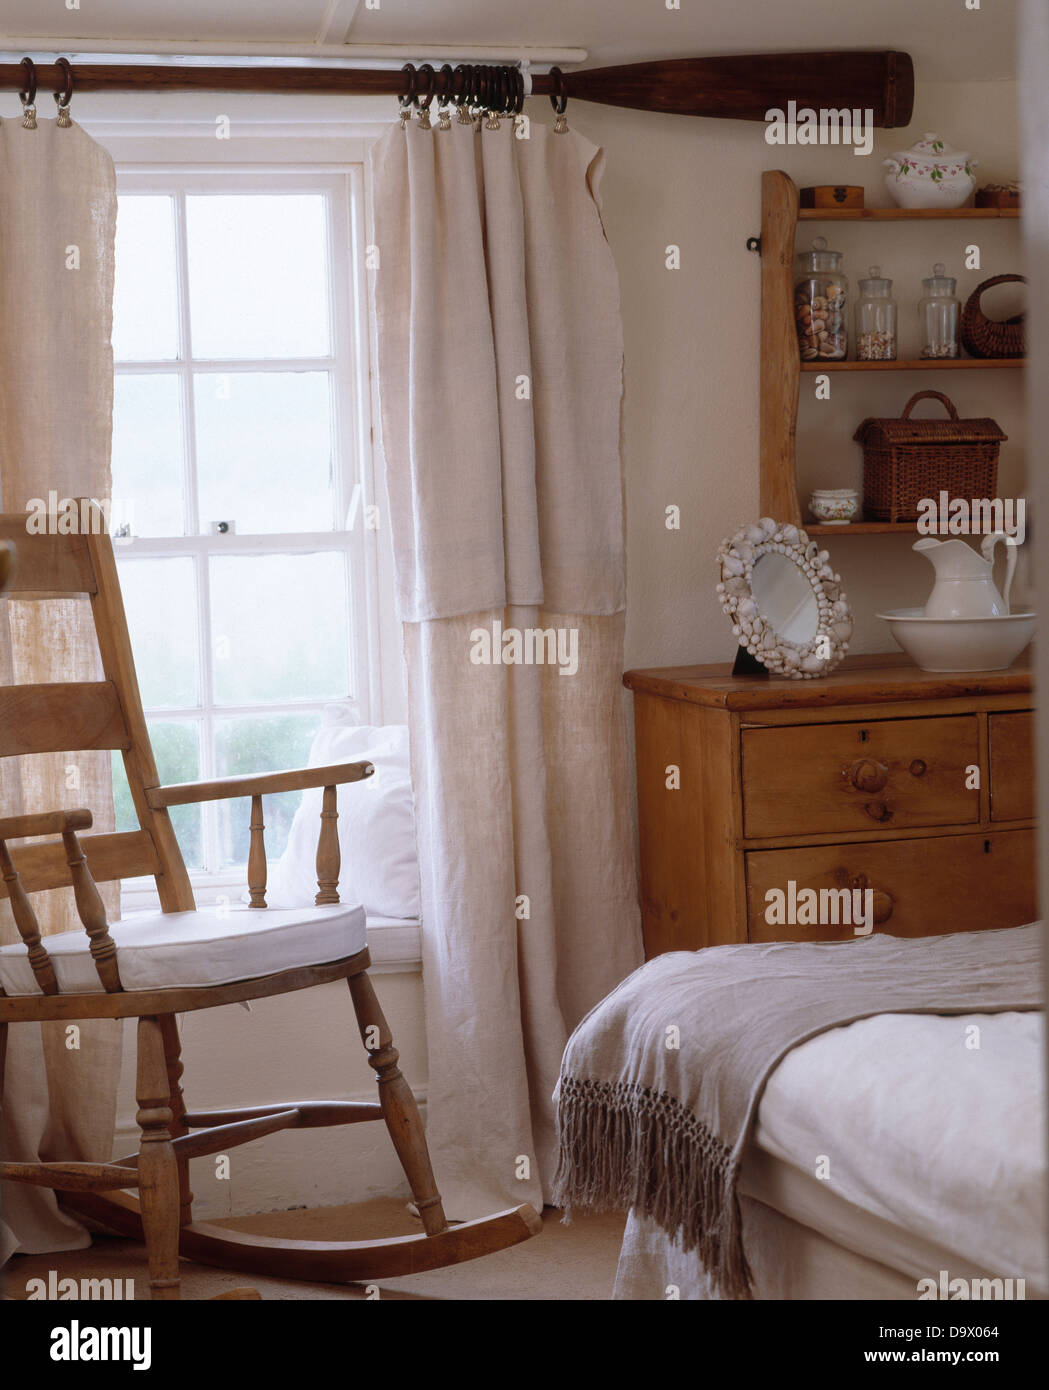 Rocking chair in front of window with old oar used as curtain rod for white linen curtains in white cottage bedroom & Rocking chair in front of window with old oar used as curtain rod ...